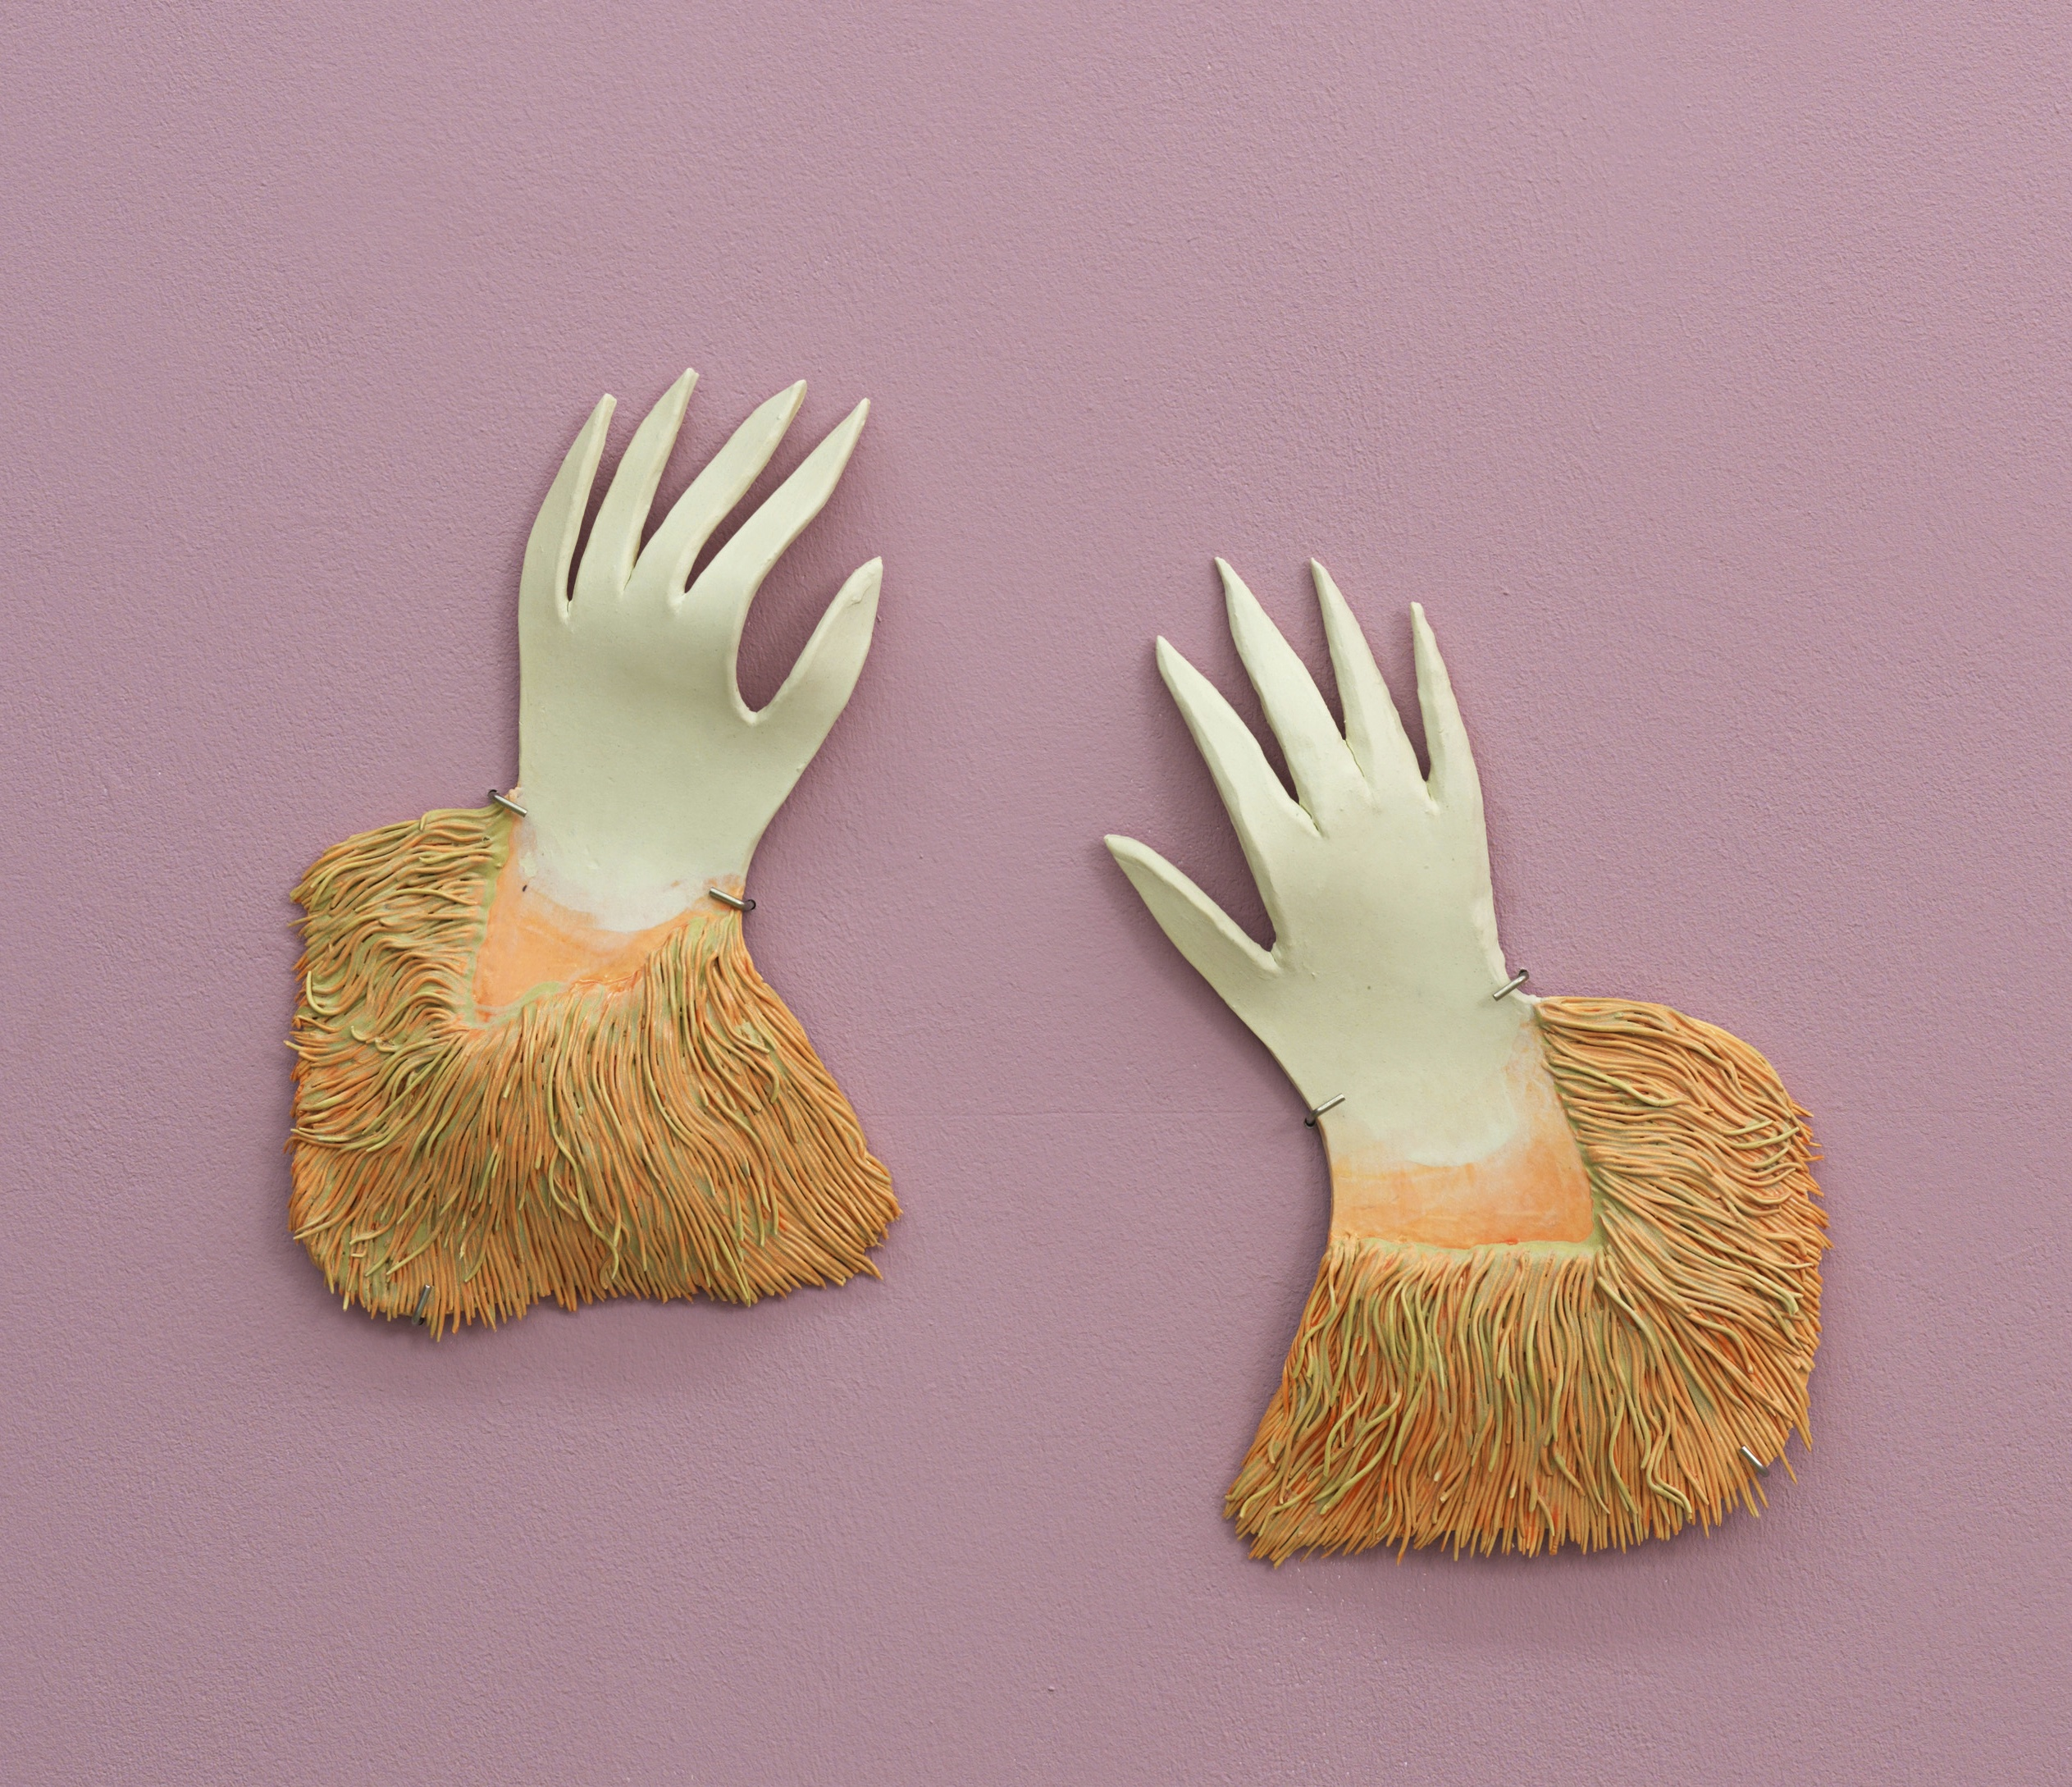 Many a girl has lost her glove, 2019. From A History of Scissors at Soy Capitan